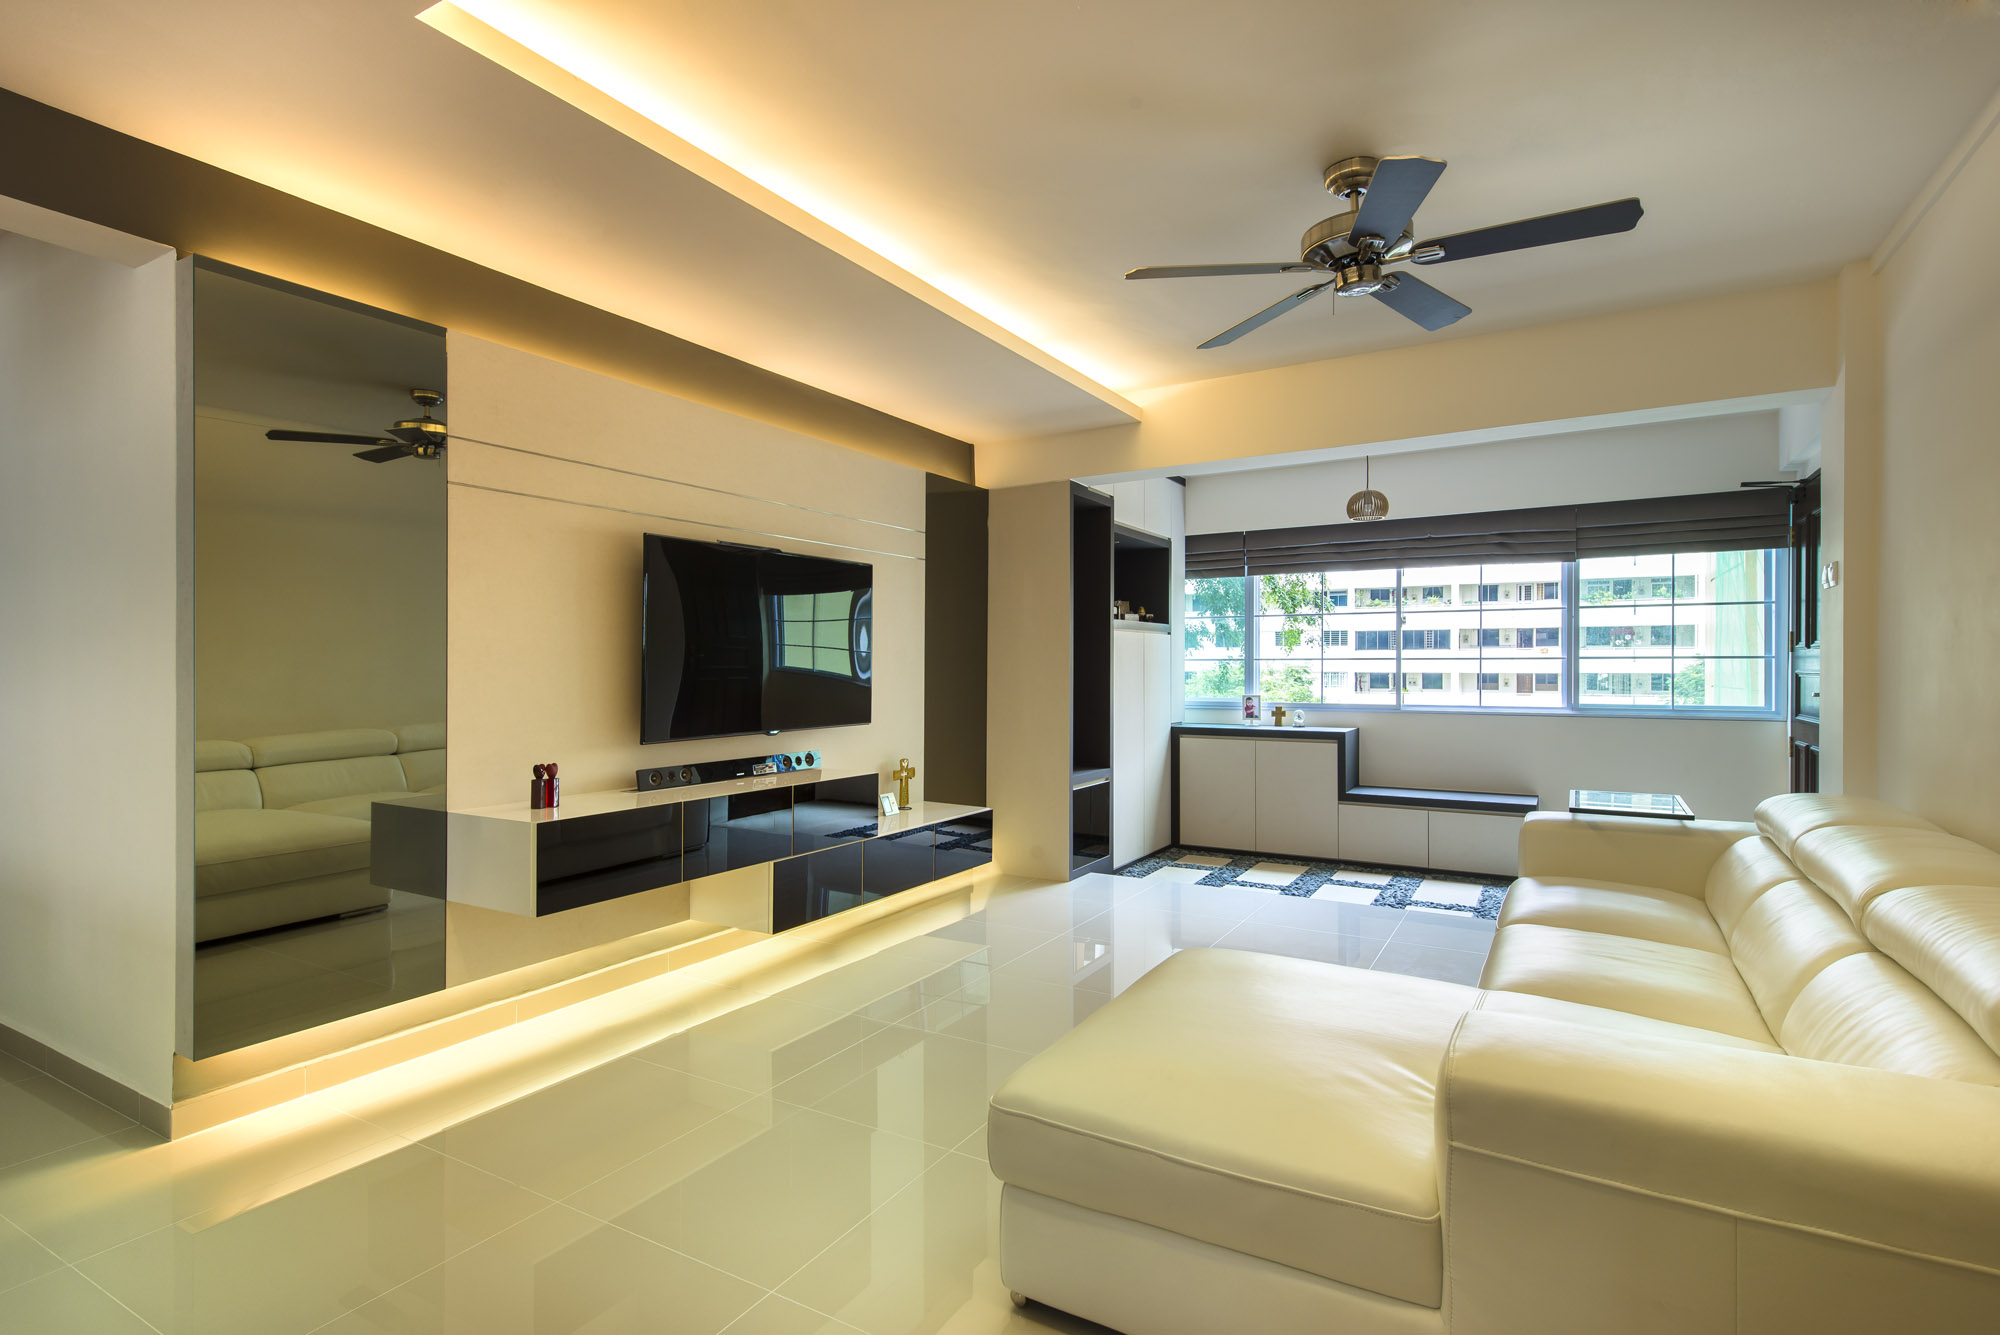 Case study hdb 5 rooms at bedok rezt relax interior for Hdb minimalist interior design